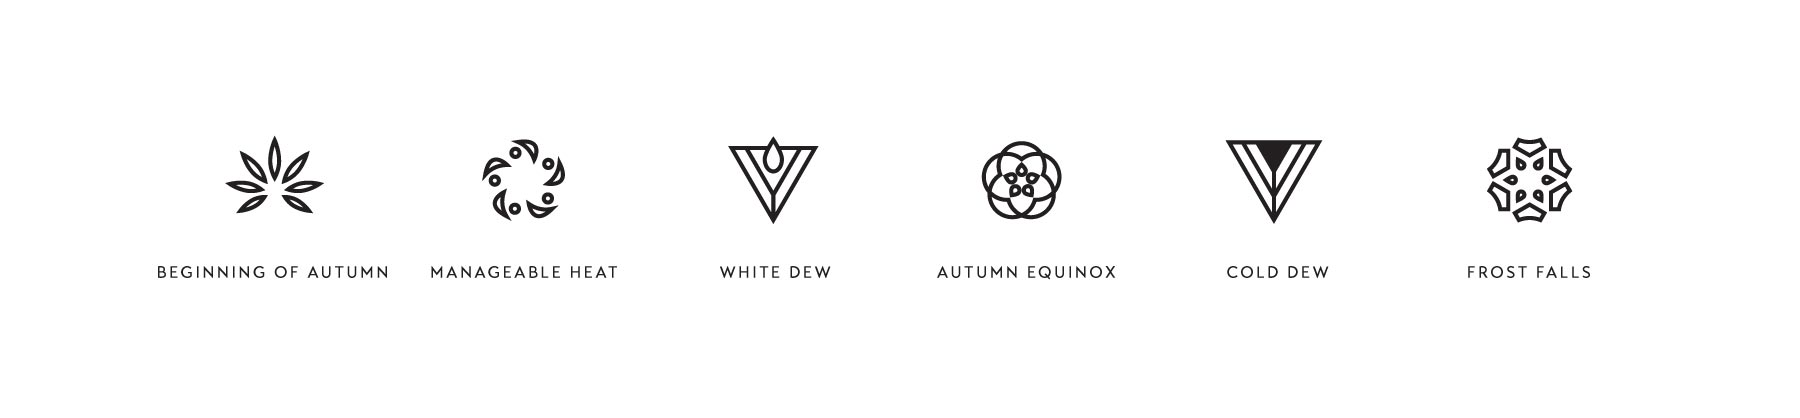 Icon designs for the autumn seasons, created by Lisa Furze